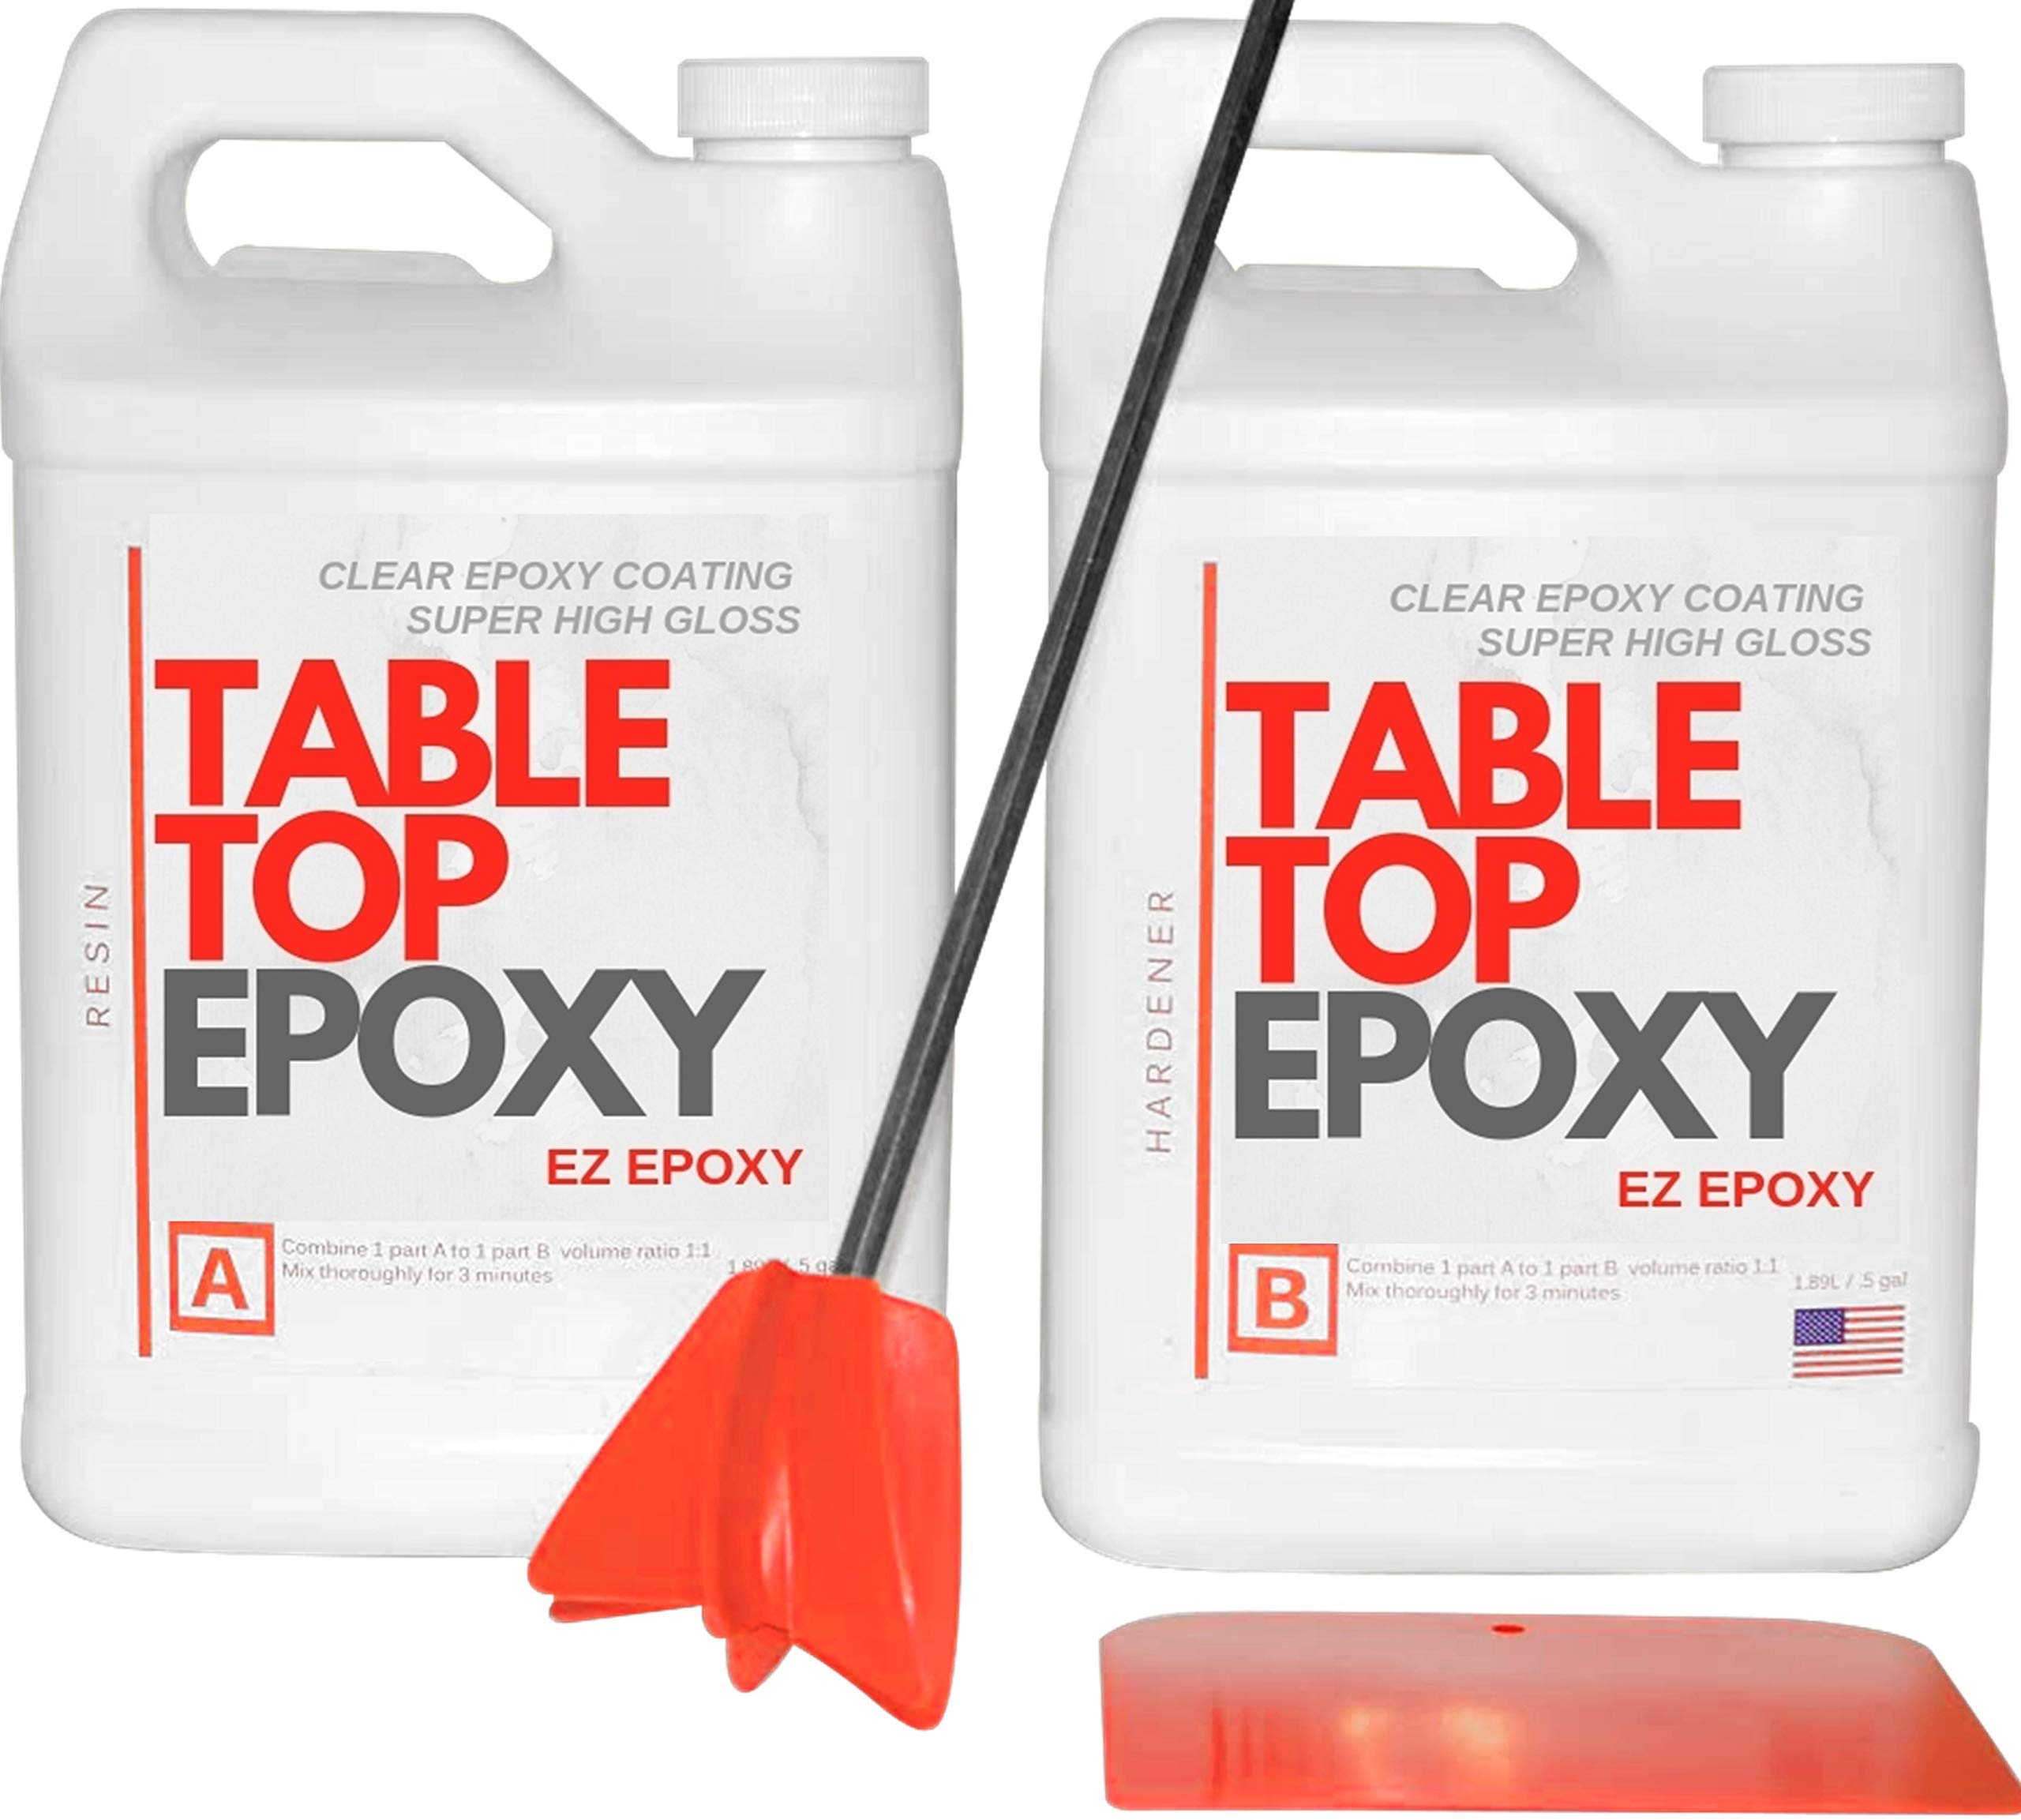 Crystal Clear Epoxy Resin -1 Gallon Epoxy kit -Coating for Tabletops, Bar Tops, Crafting - 2 Part Epoxy Resin - UV Protection & NO VOC - High-Gloss & Low-Odor by EZ Epoxy- Tabletop Epoxies Resin